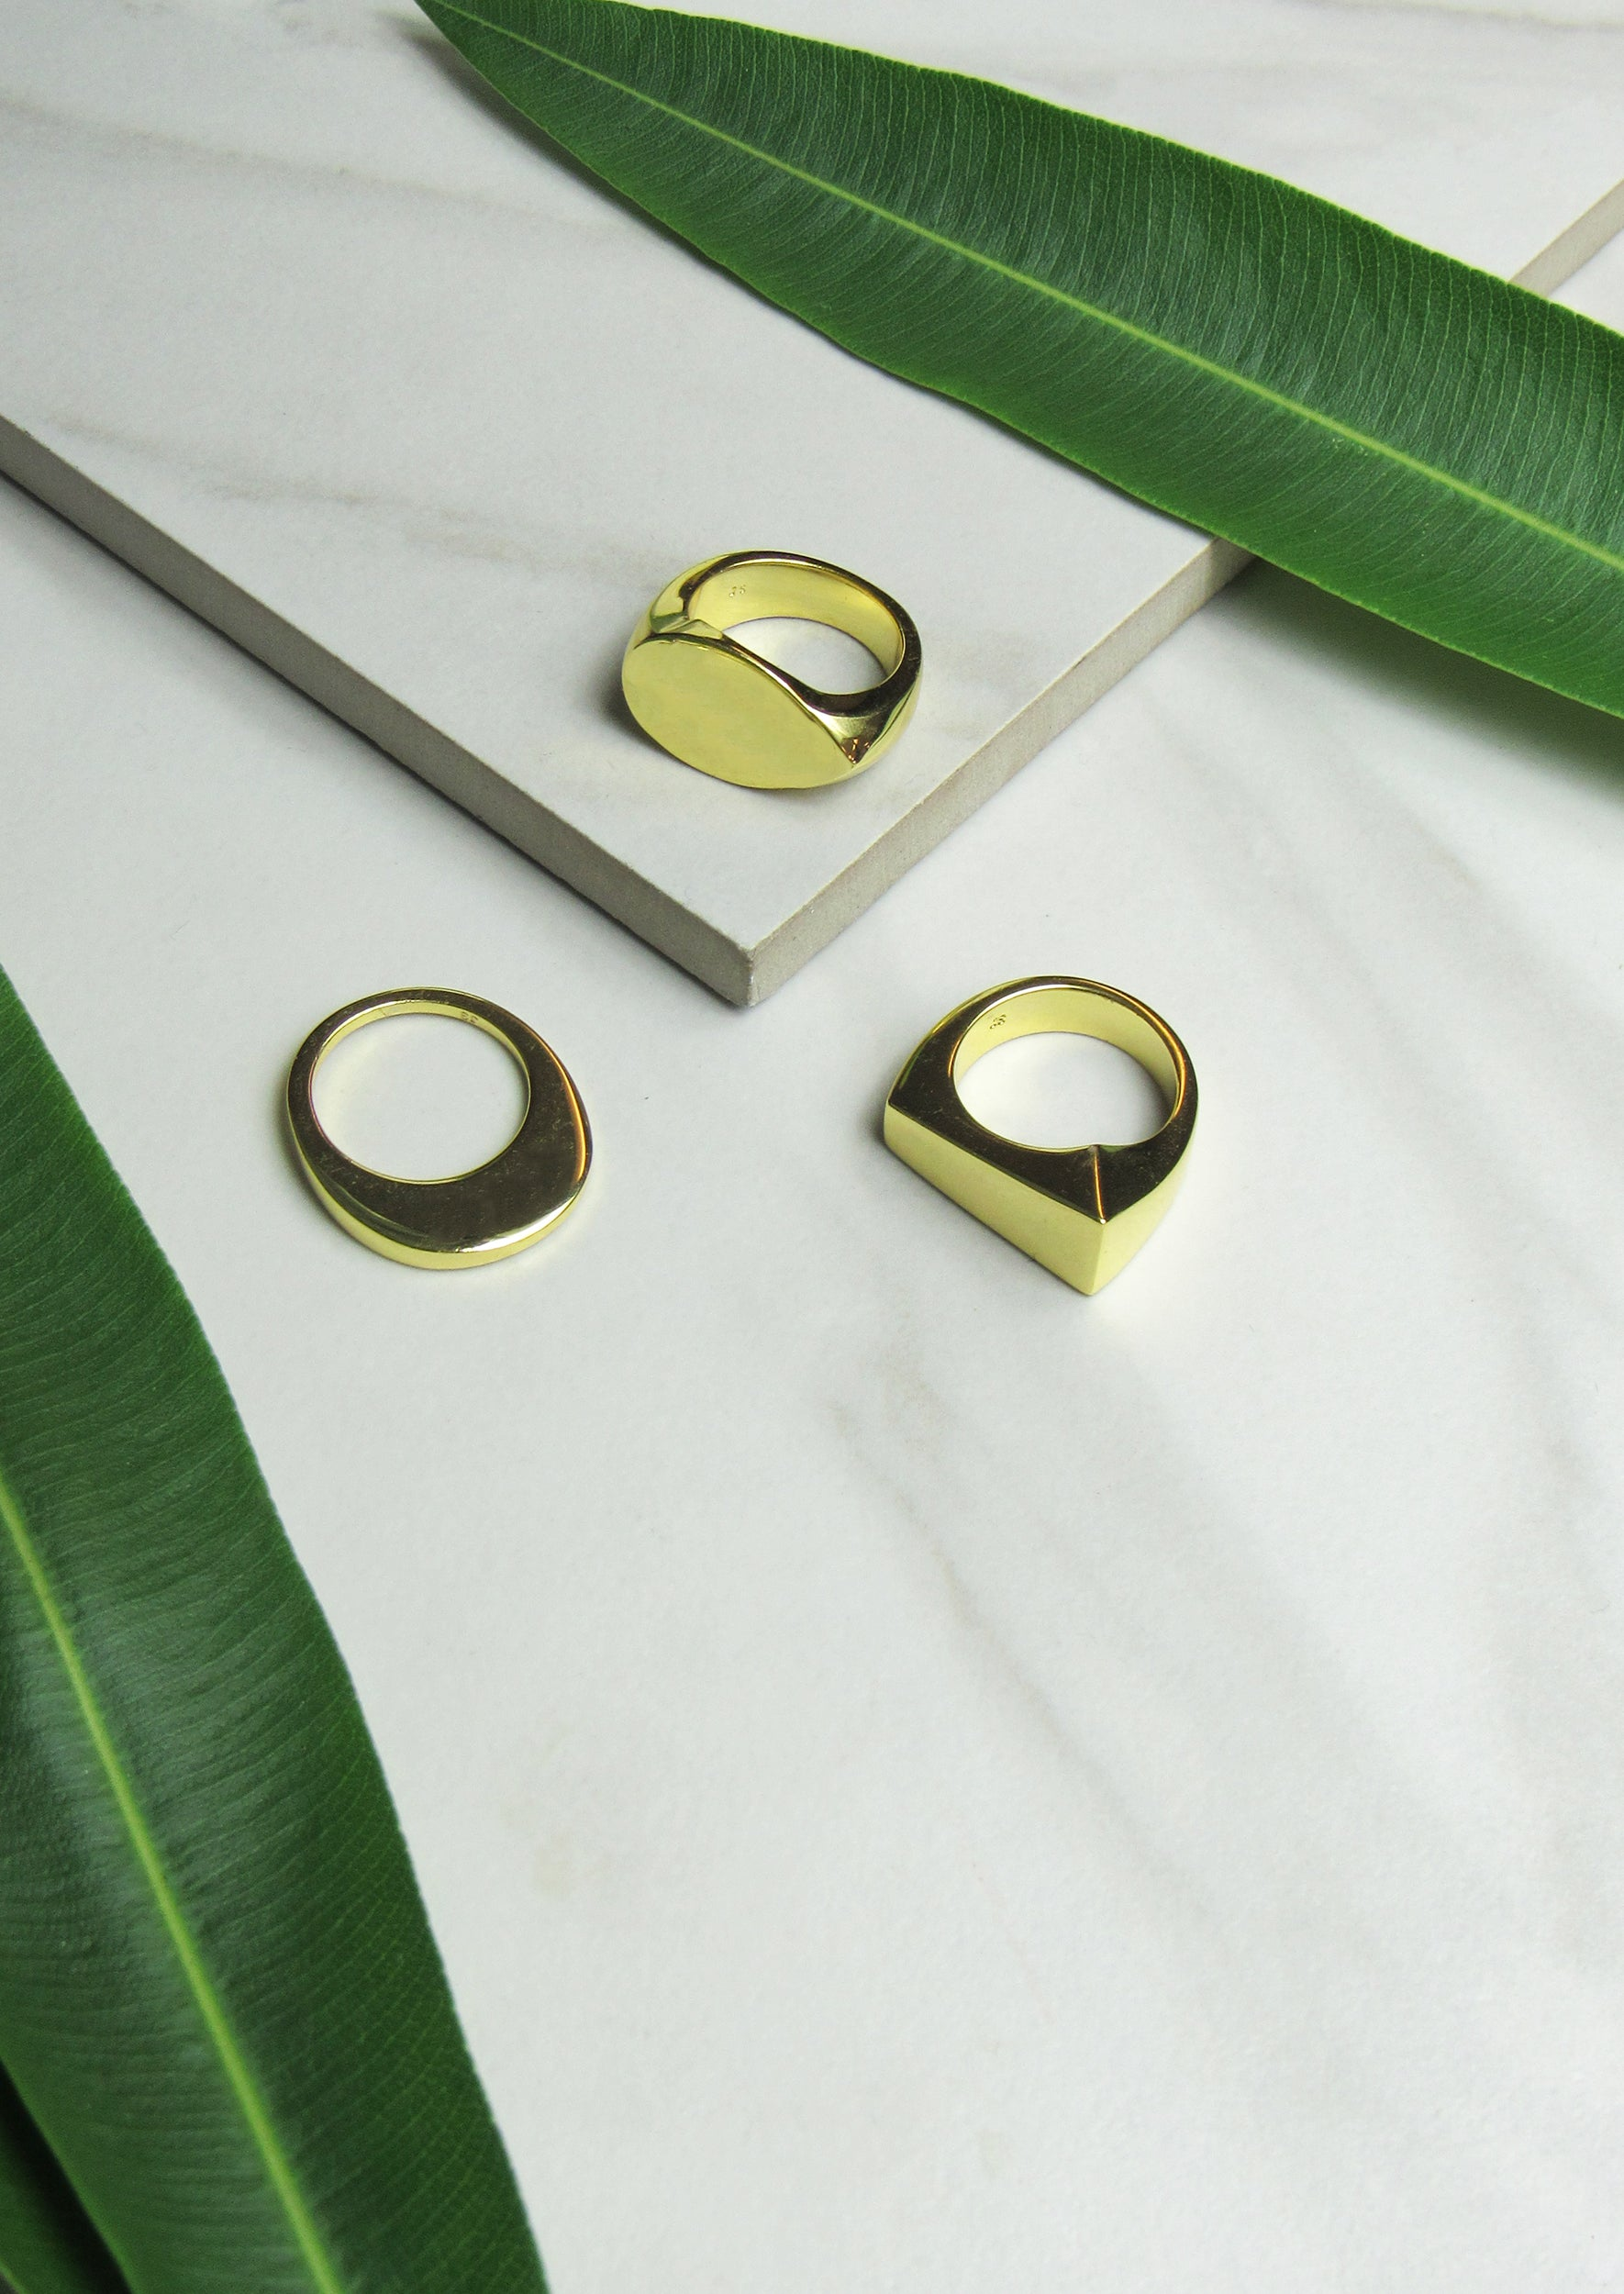 Mykonos 14K Shiny Gold Plated Rings - Jules Smith - 14K Gold Plated - Boho Jewelry